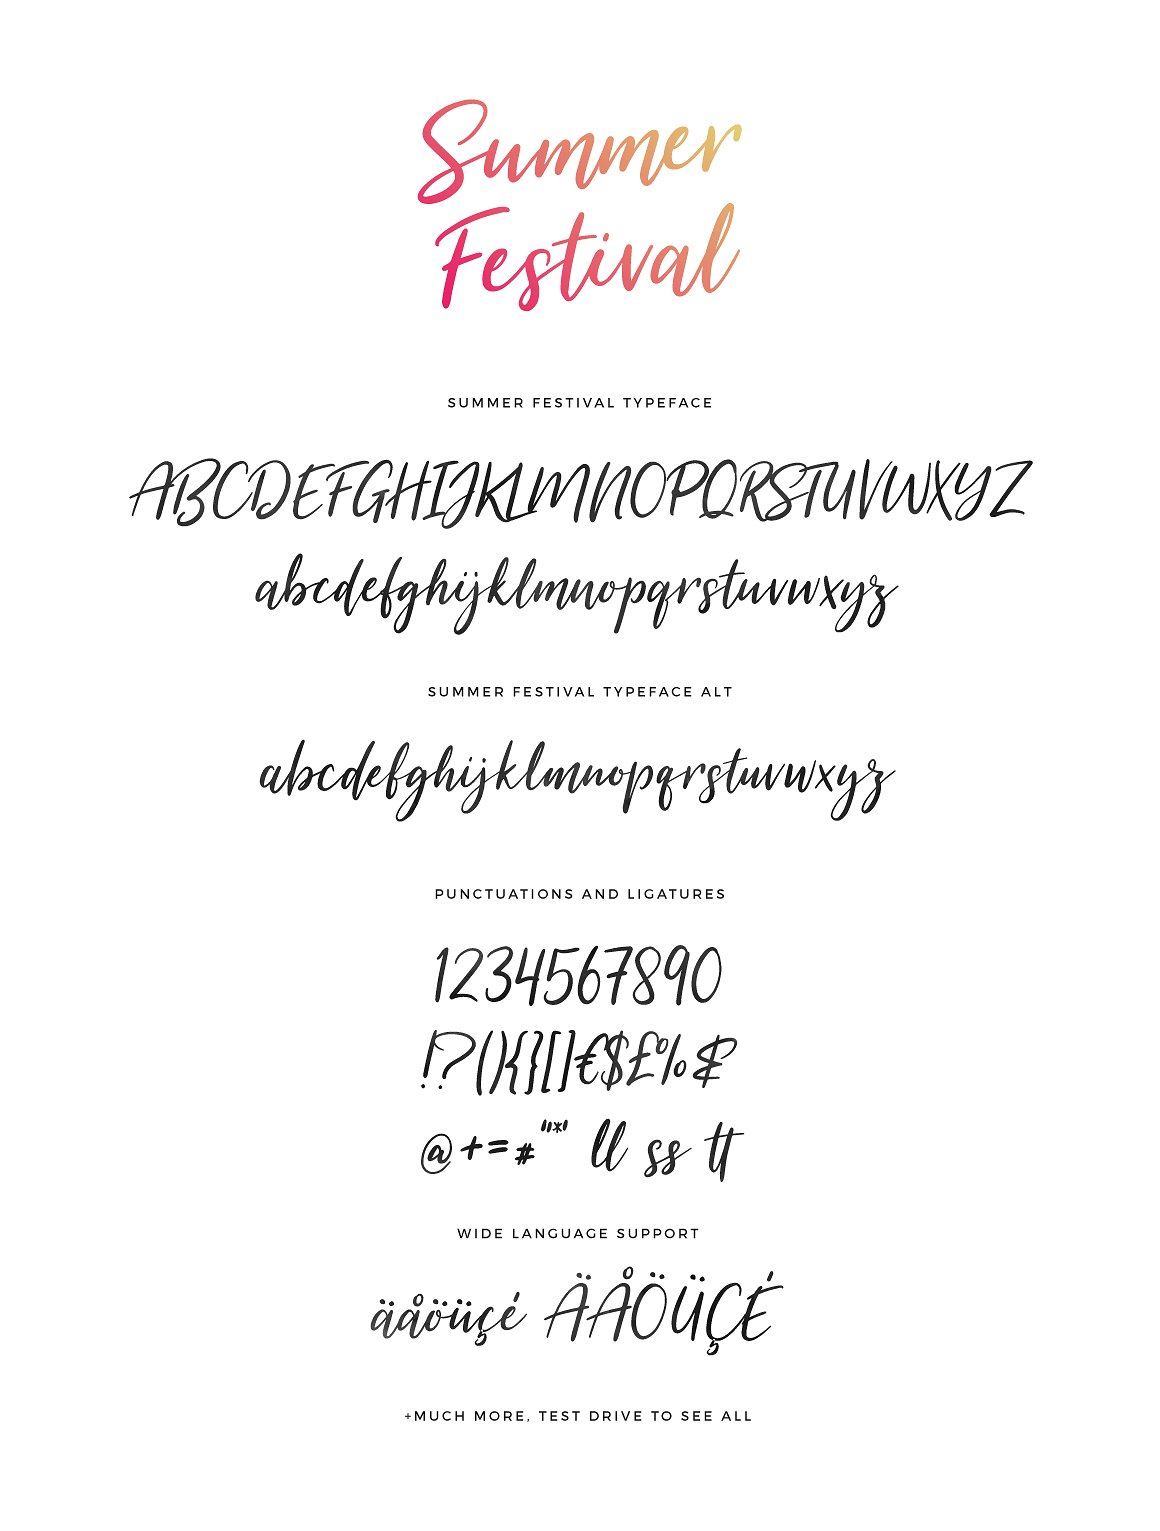 Summer Festival Typeface example image 7